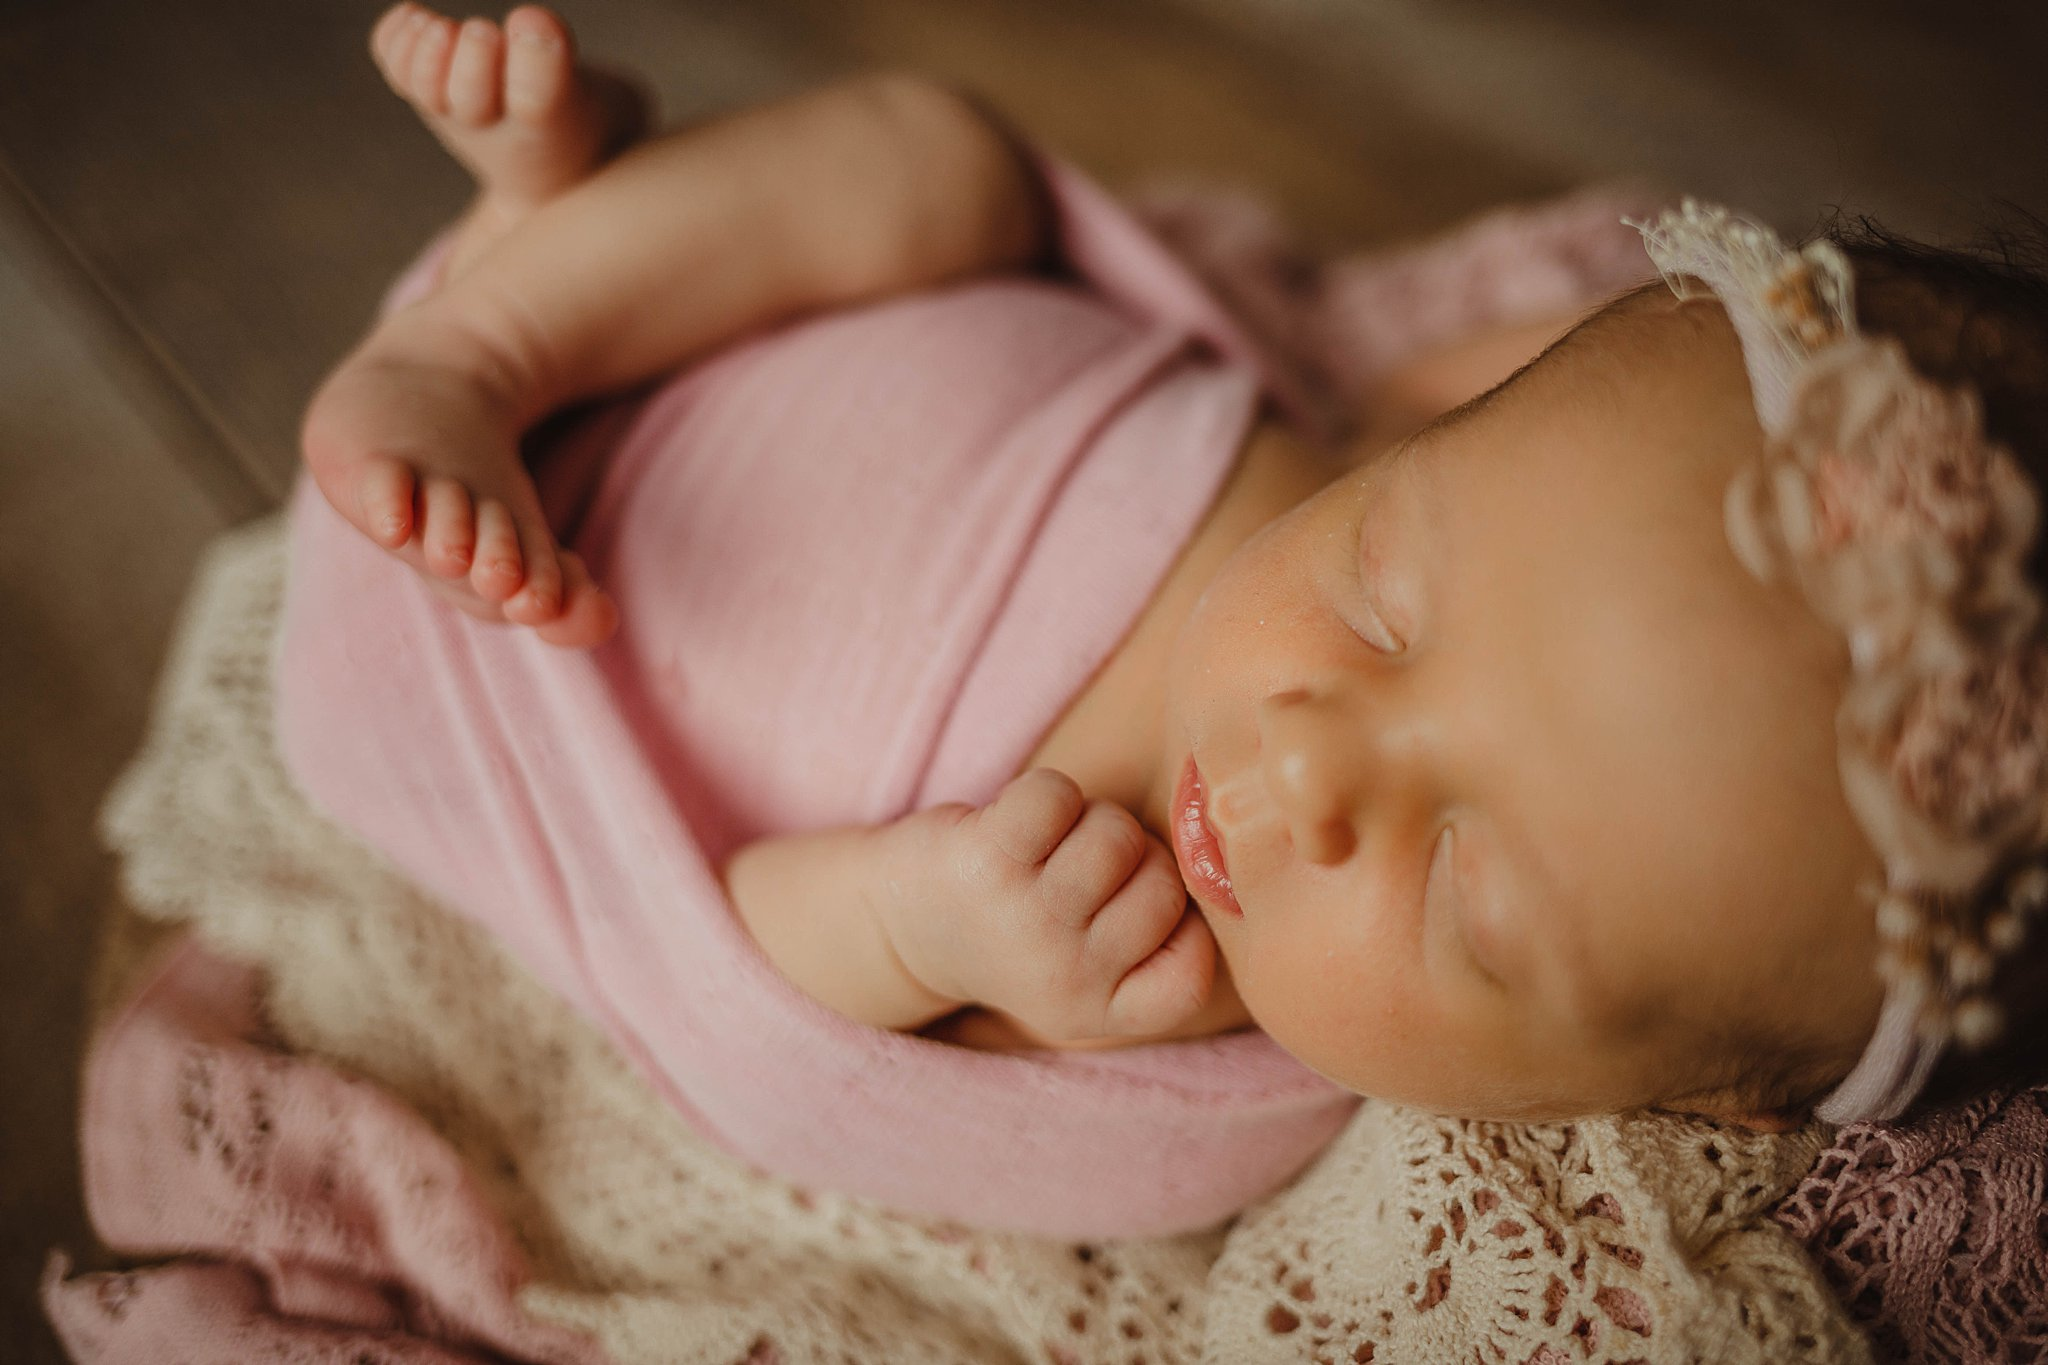 osage-beach-missouri-newborn-photo-studio-flowers-03-11-2019-3.jpg